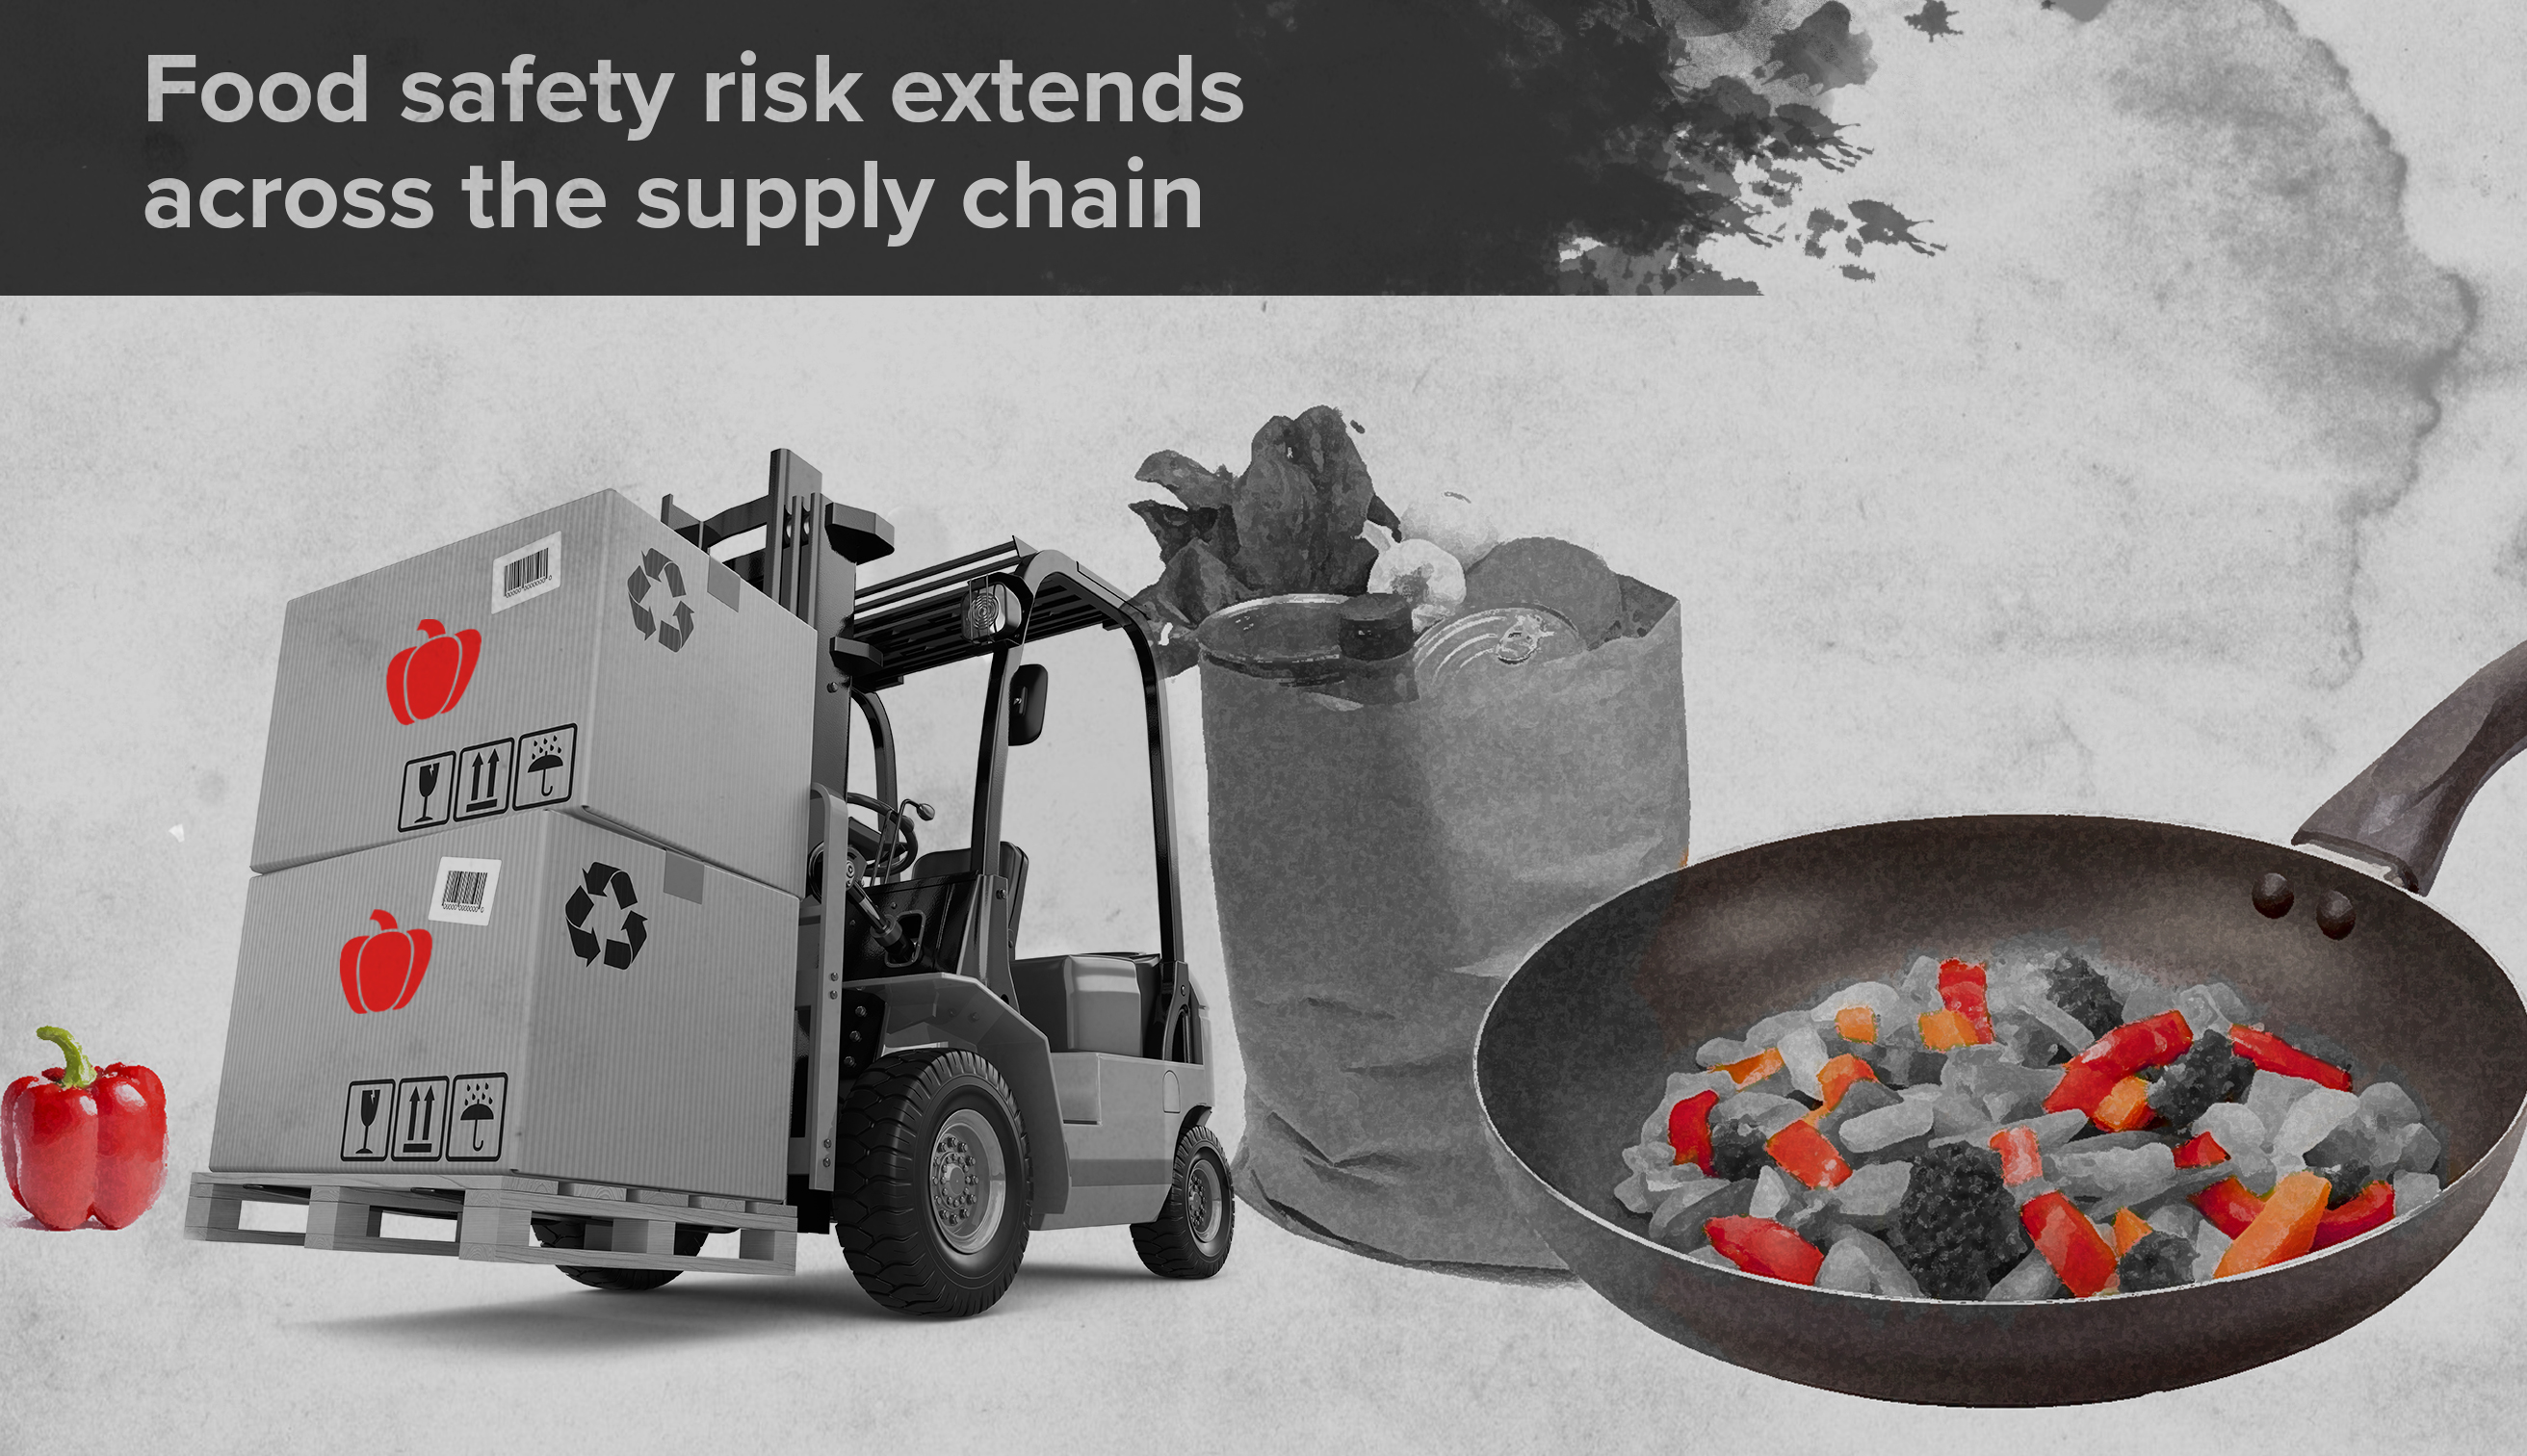 Food safety risk extends across the supply chain.